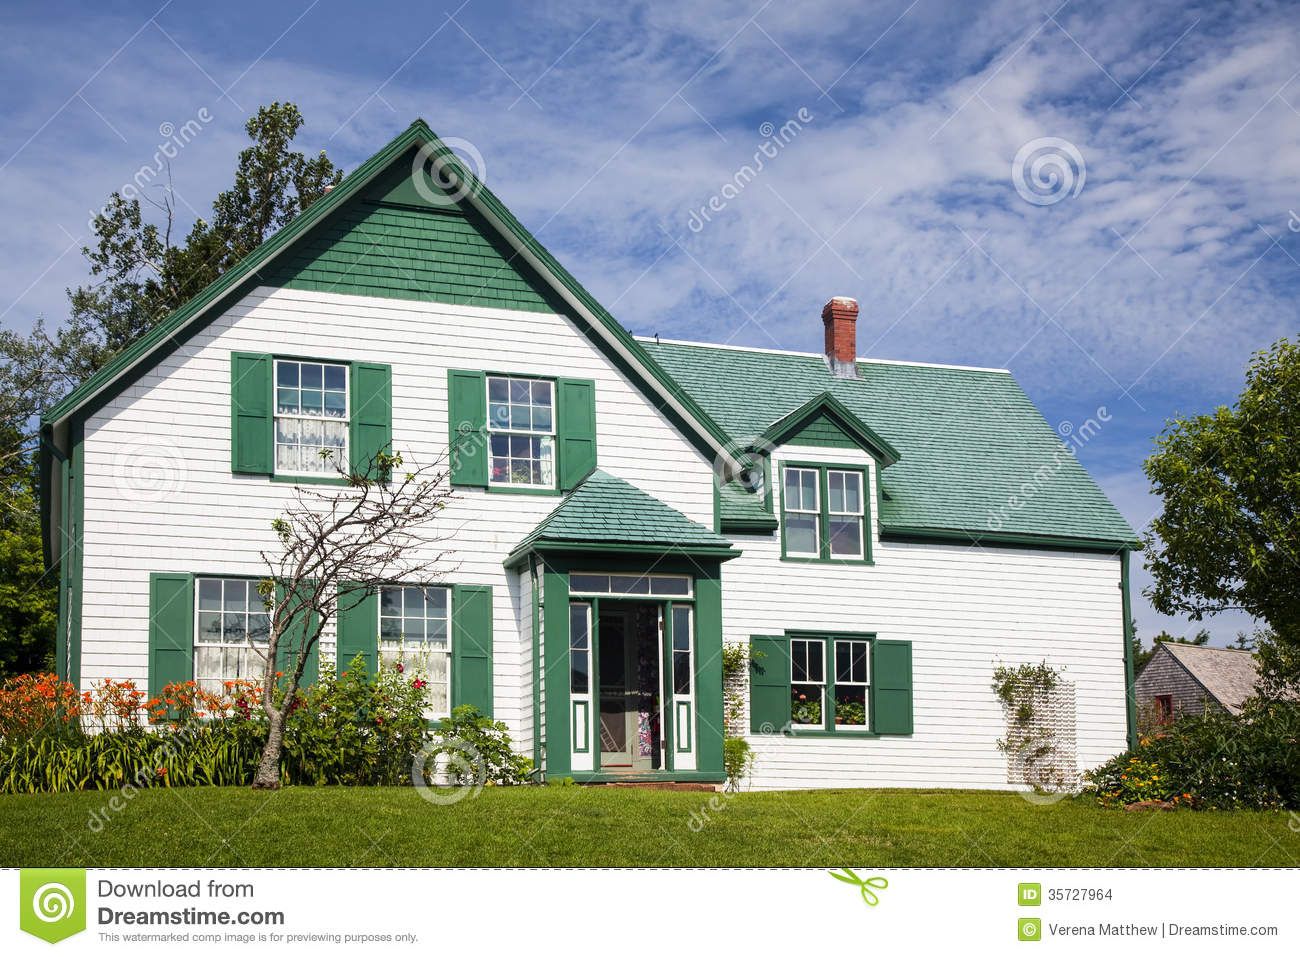 Green Gables House Stock Photo Image Of Maritime Nobody